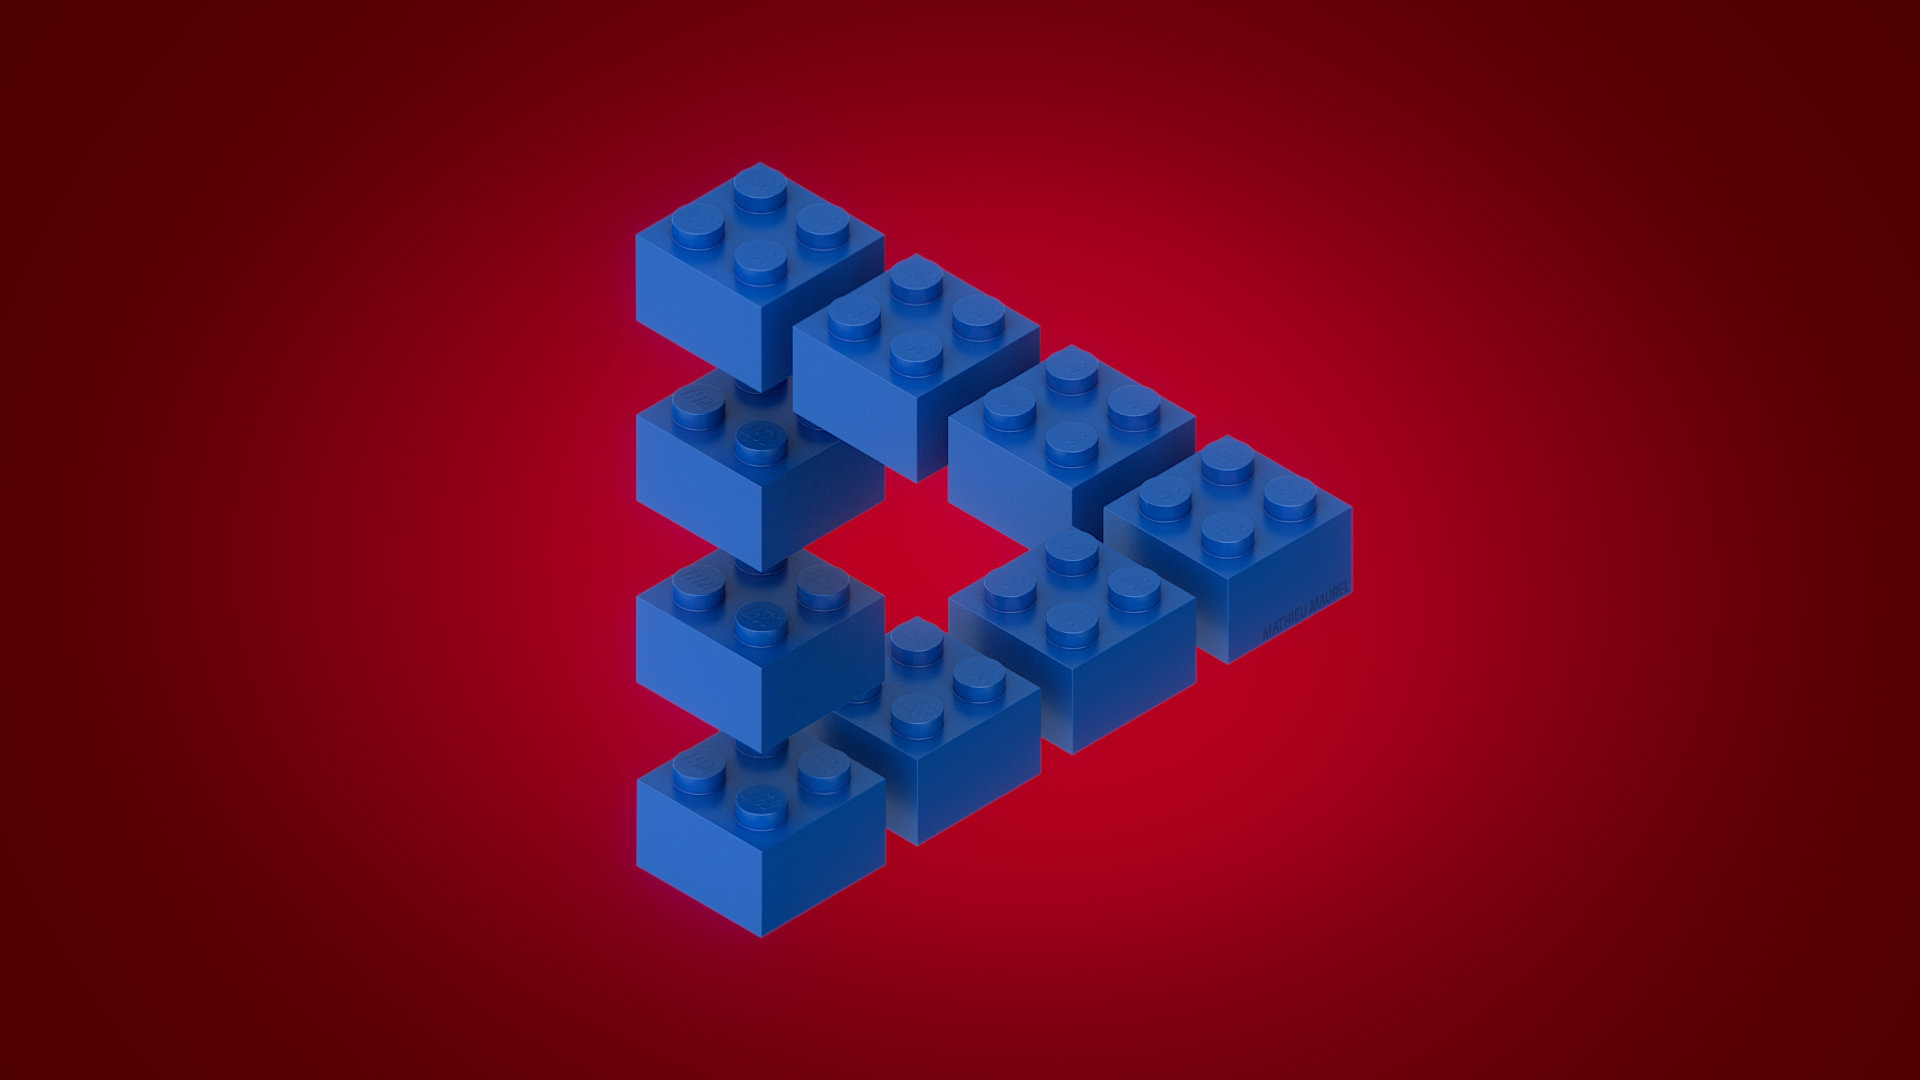 LEGO ABSTRACT